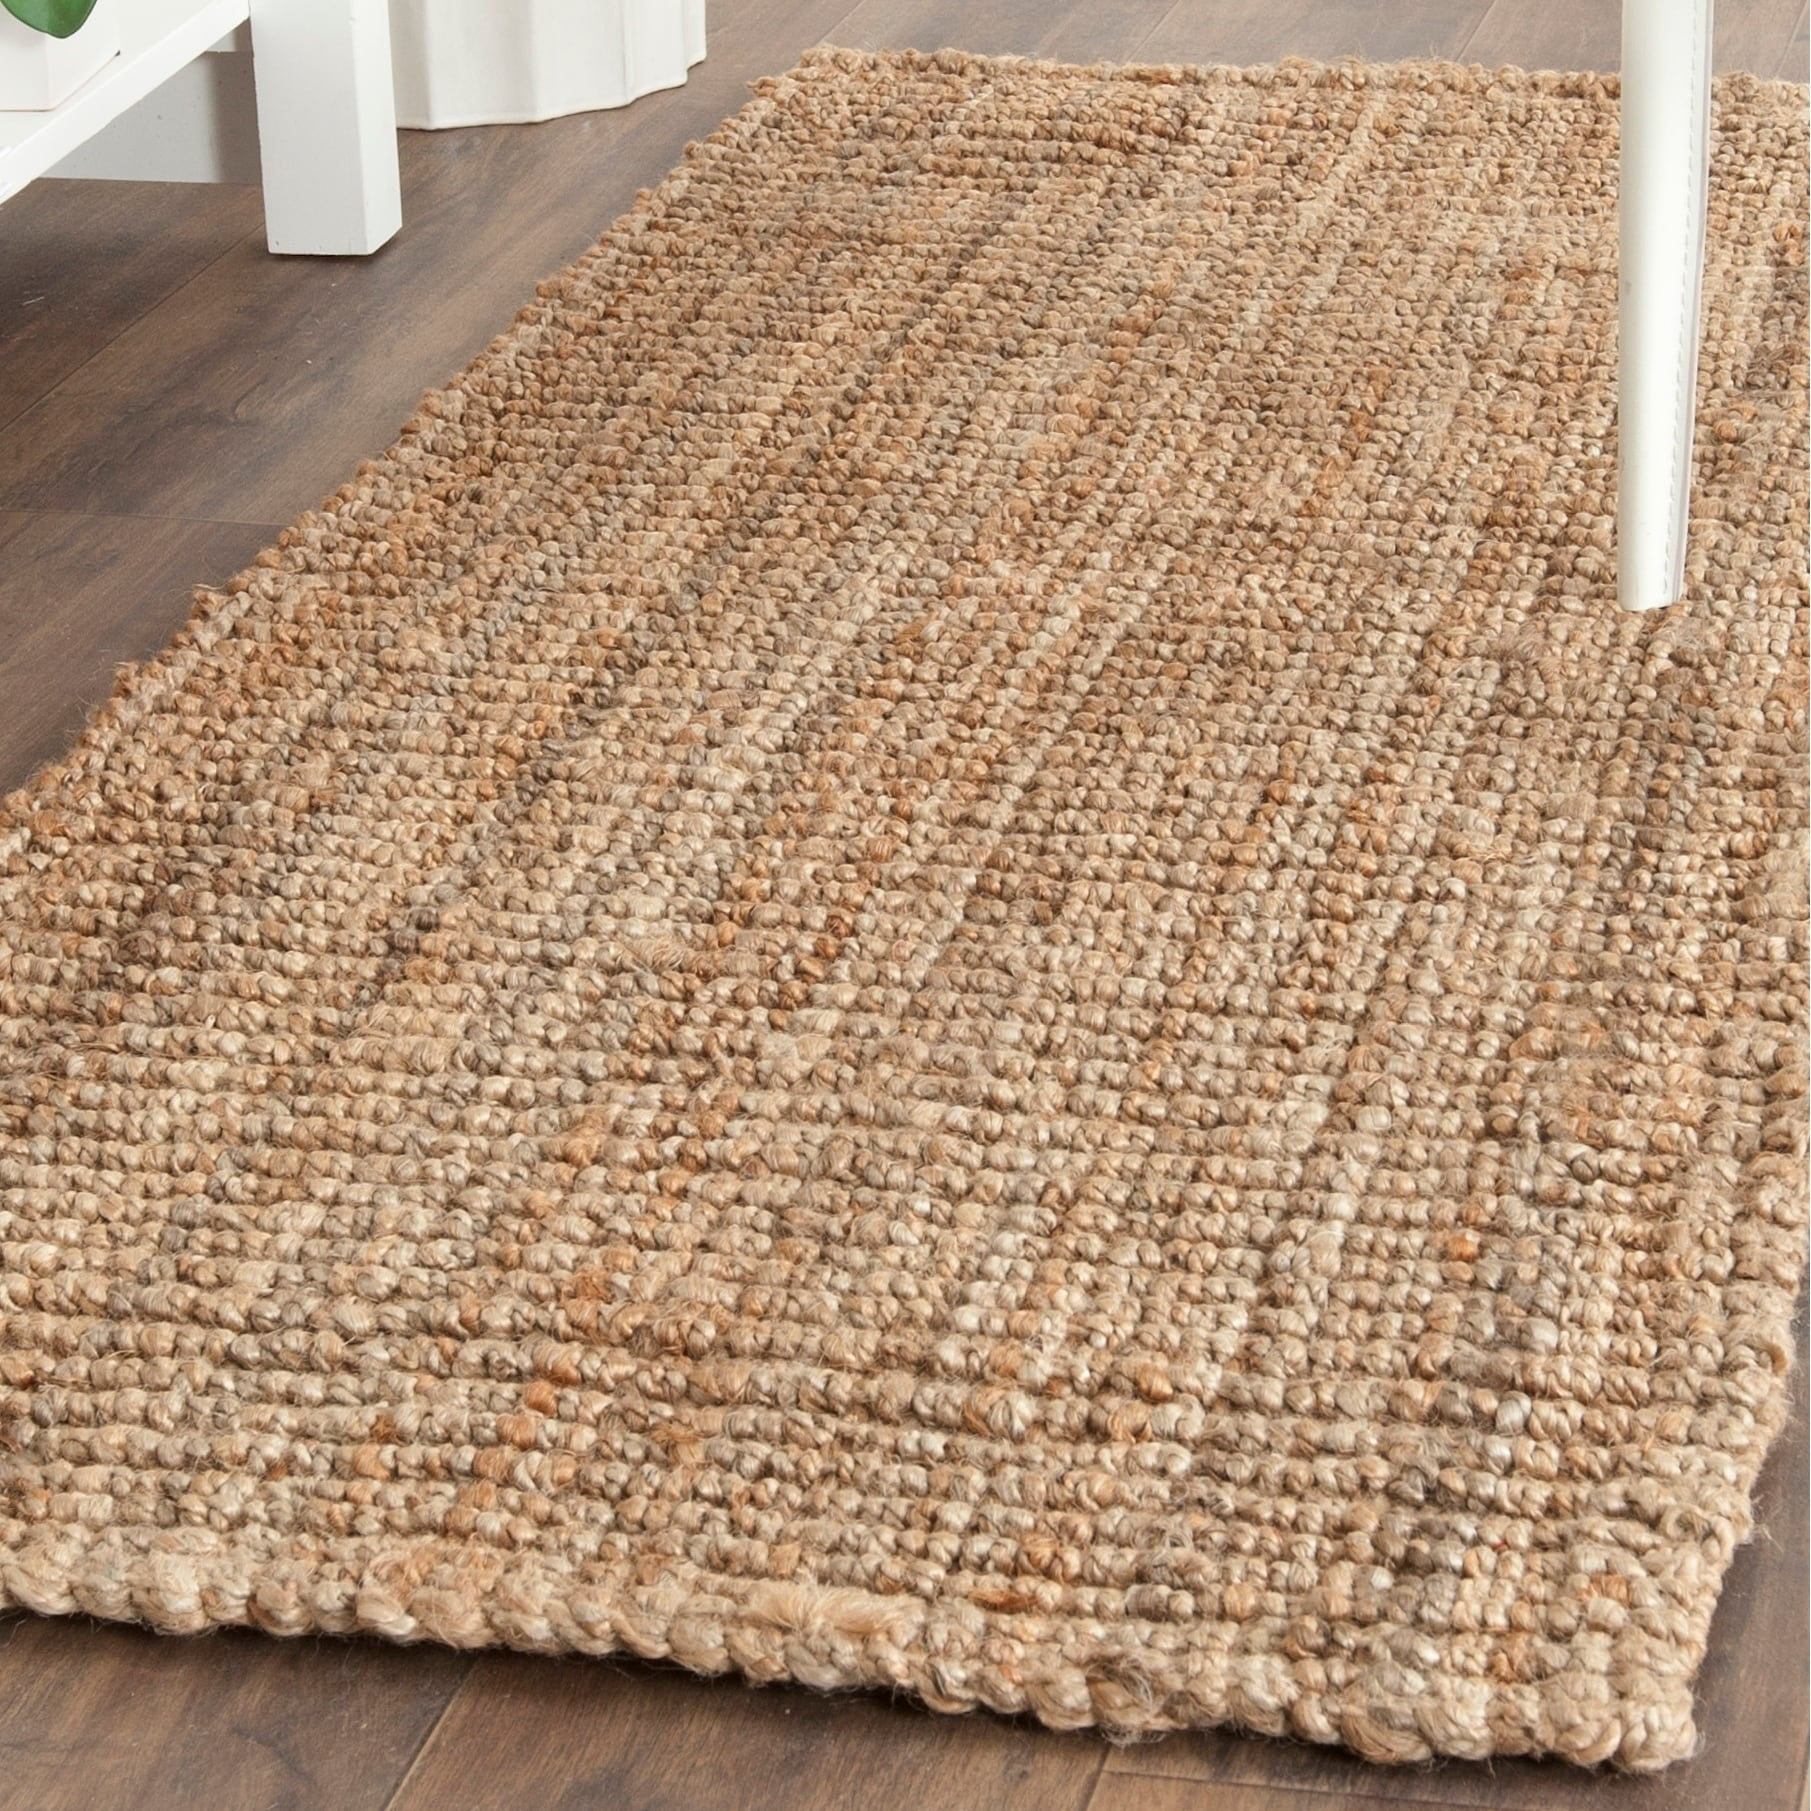 Safavieh Casual Natural Fiber Hand Woven Accents Chunky Thick Jute Rug 2 6 X 12 On Free Shipping Today 5524438